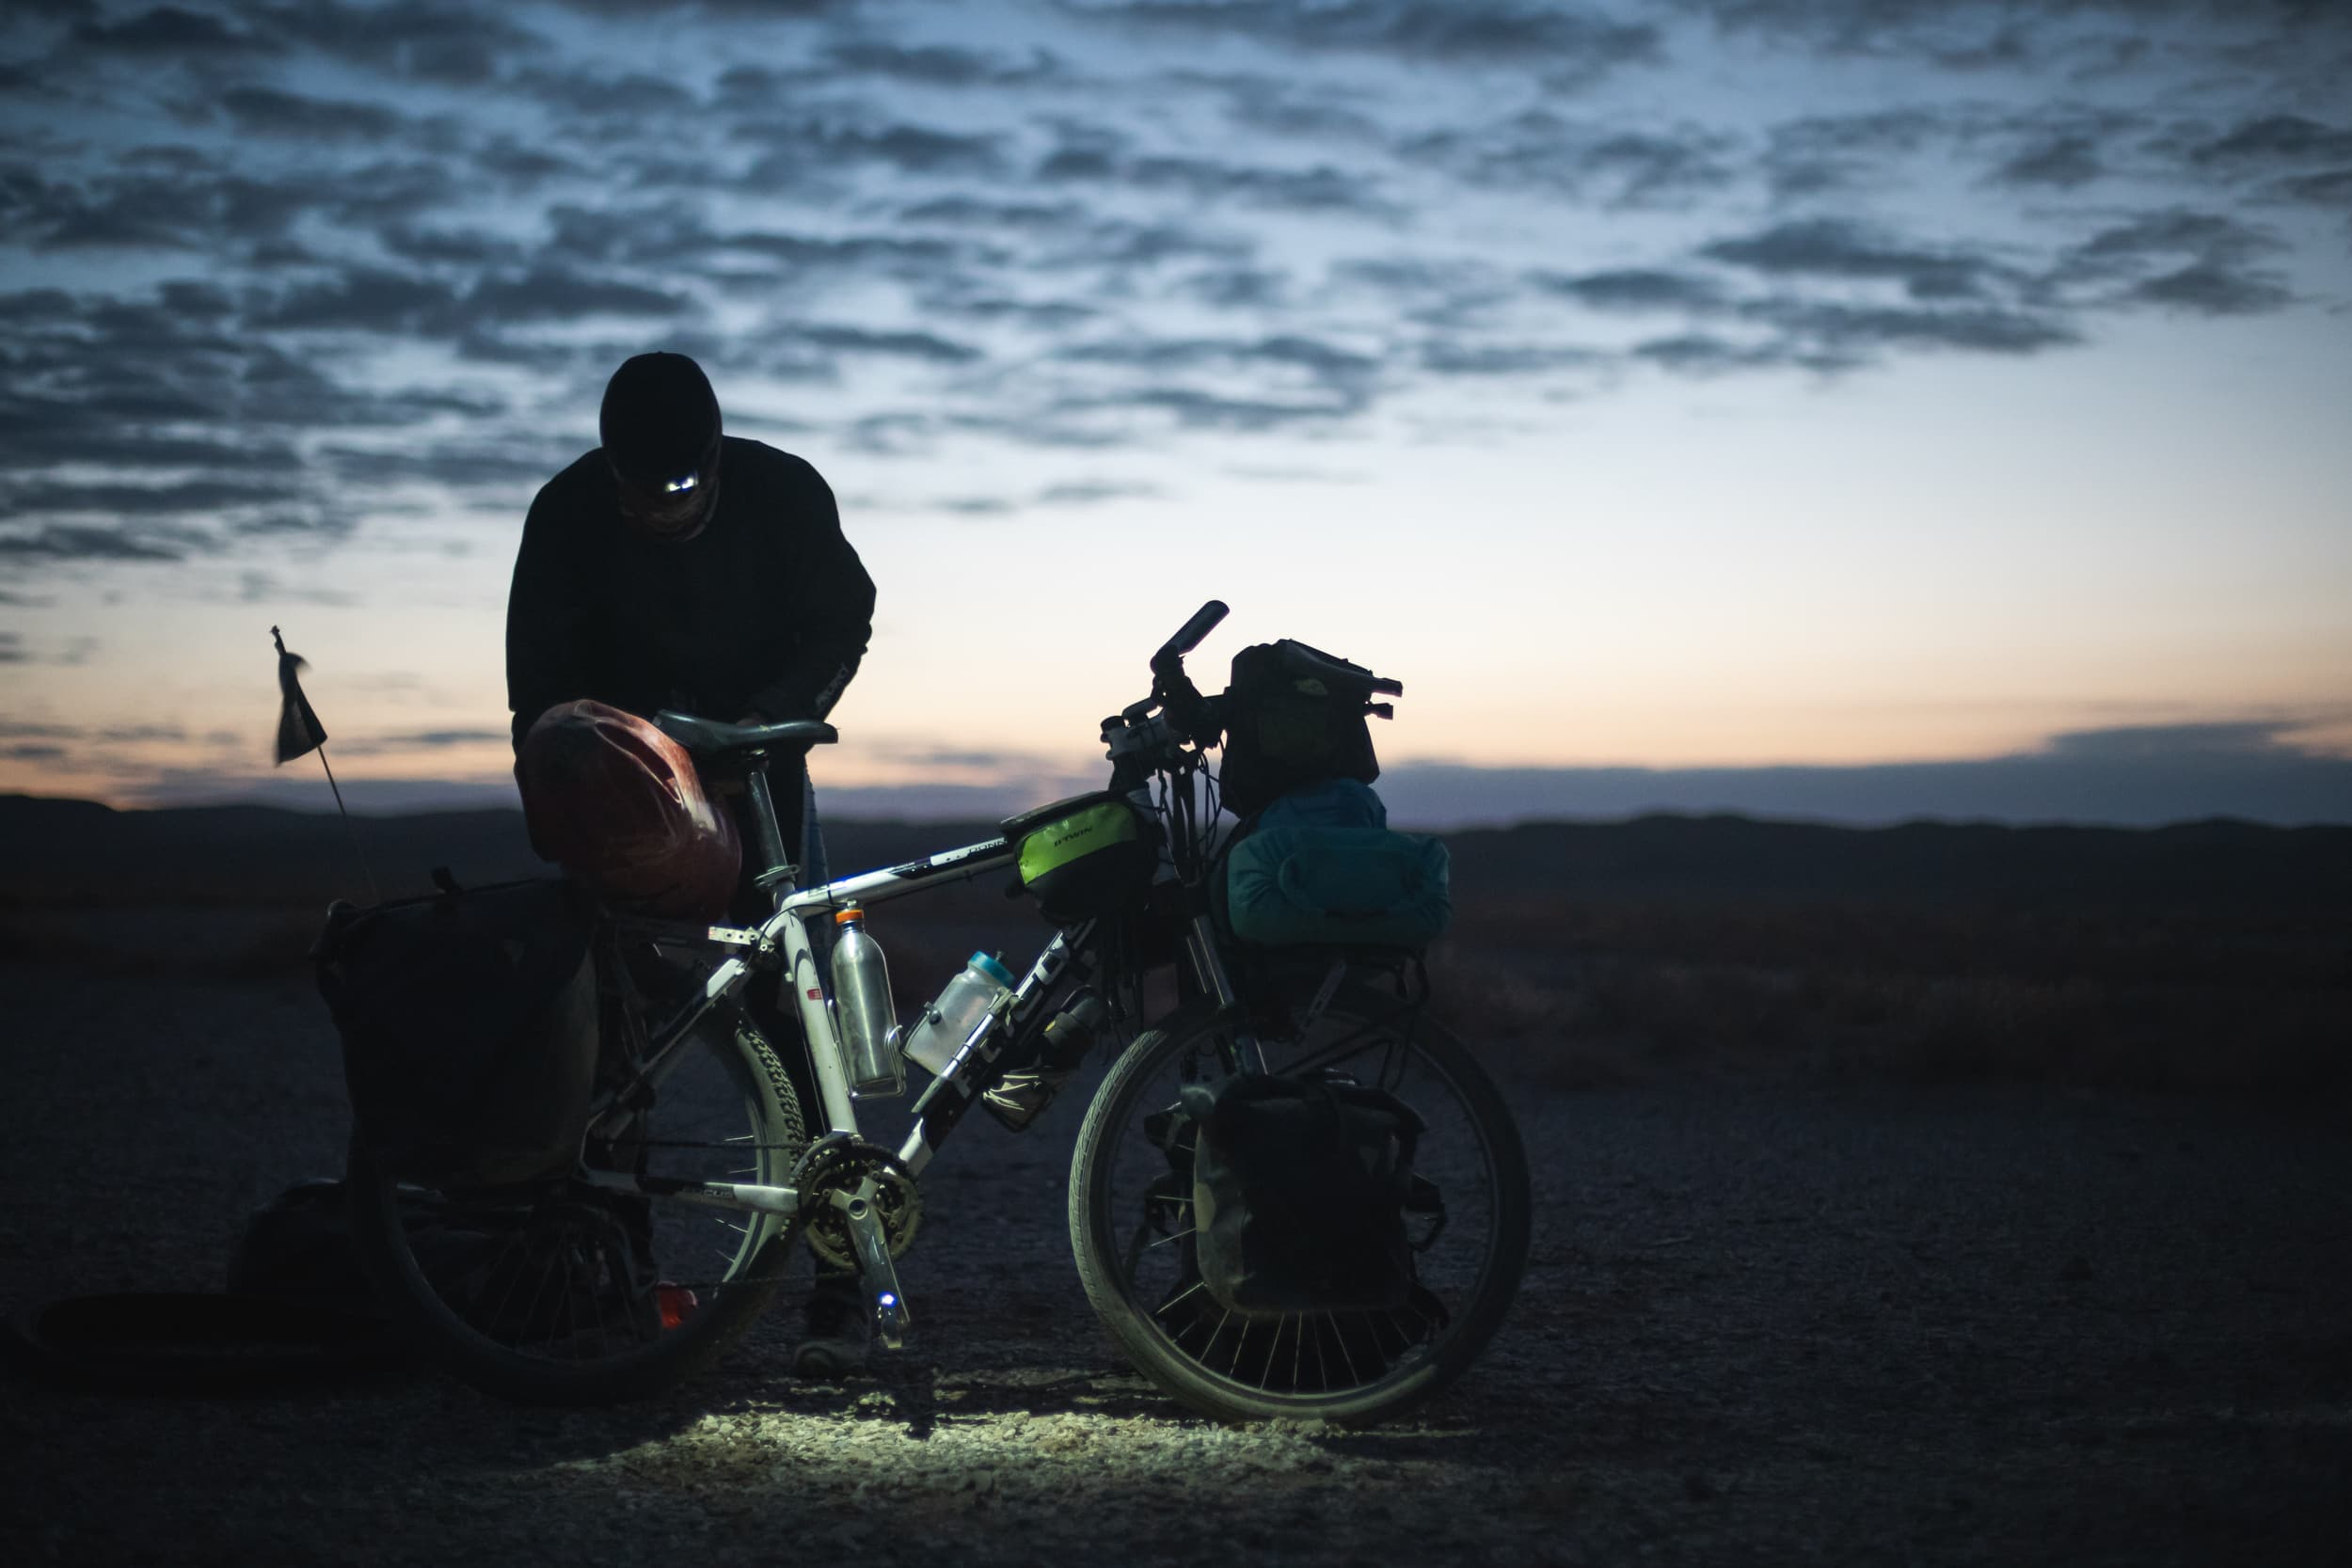 packing the bikes before sunrise